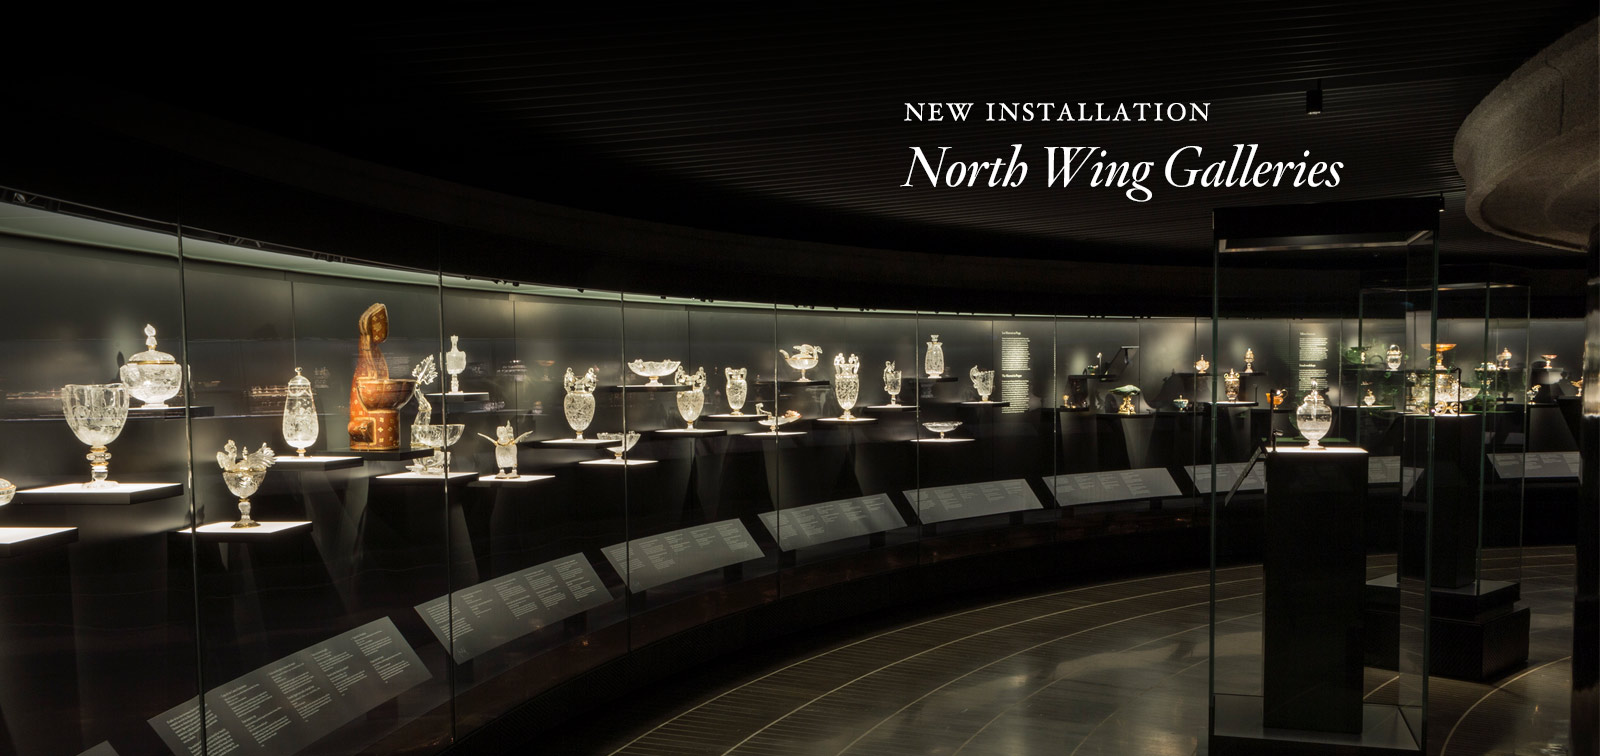 New installation. North Wing Galleries